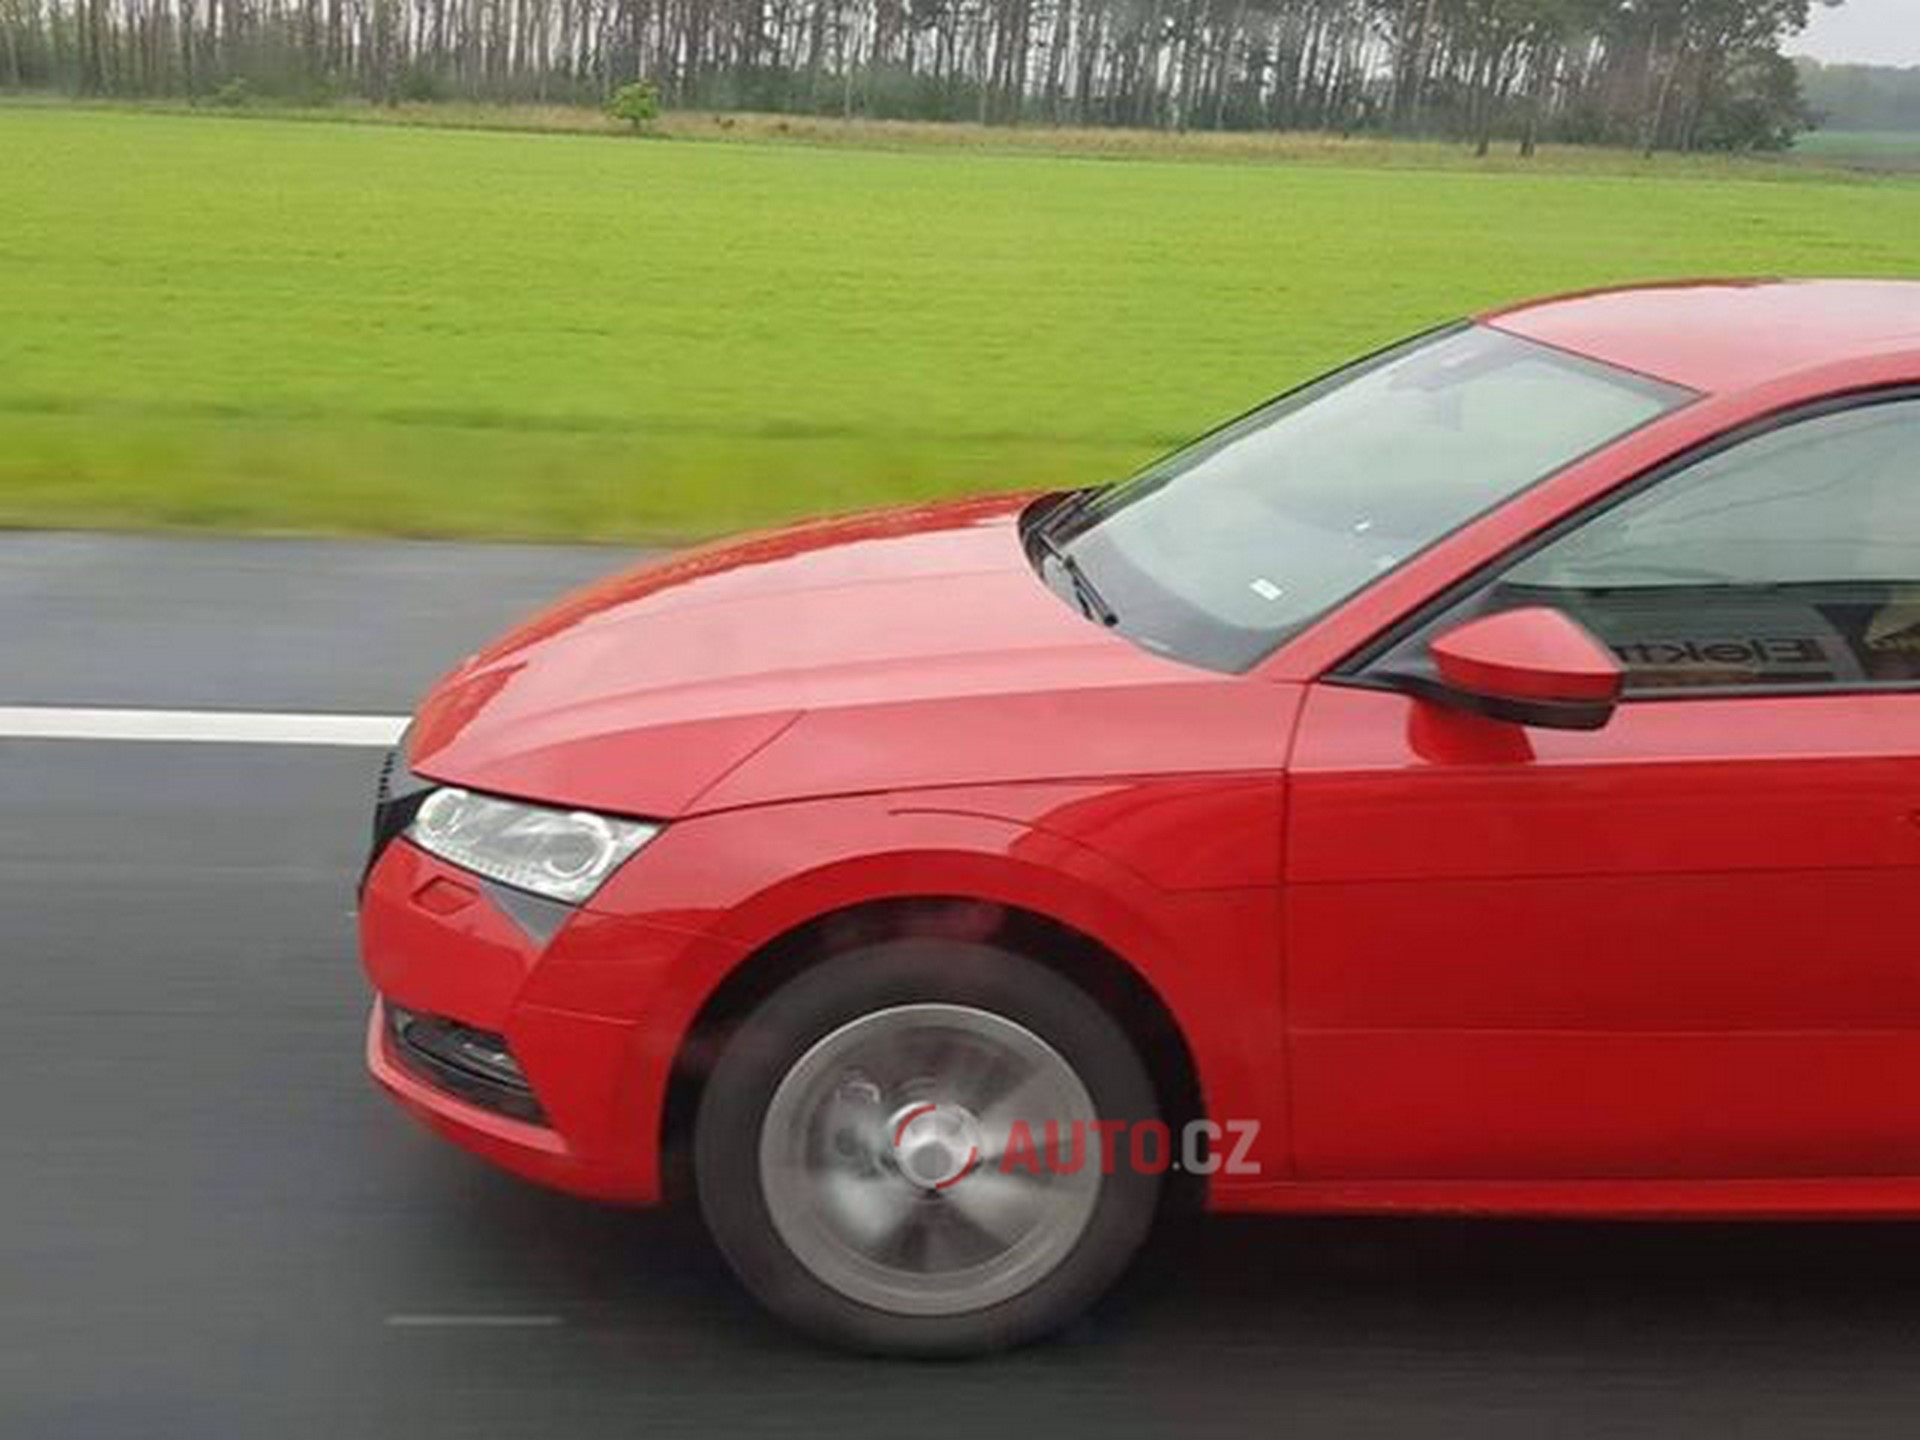 Skoda-Octavia-spy-photos-4